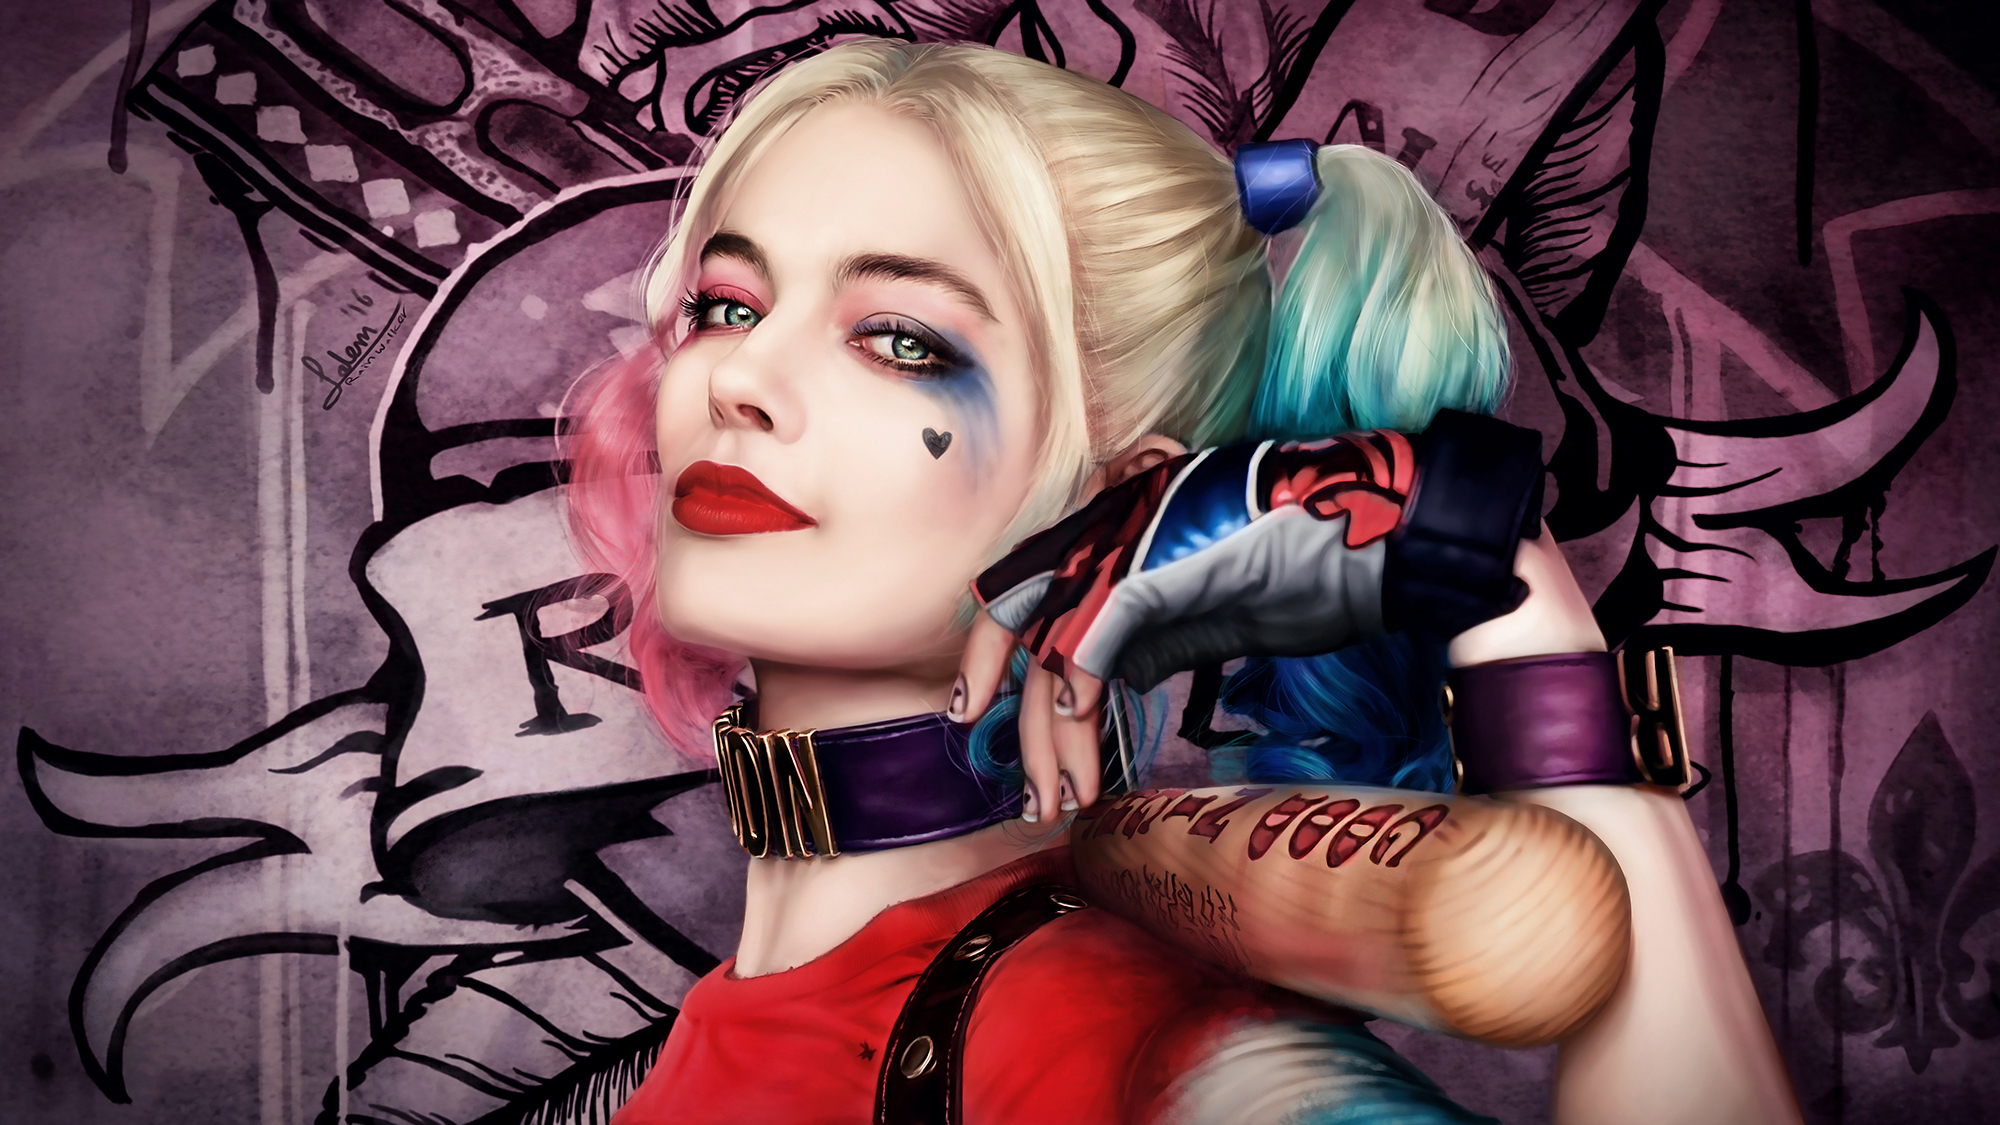 Harley Quinn - Suicide Squad - Fan Art